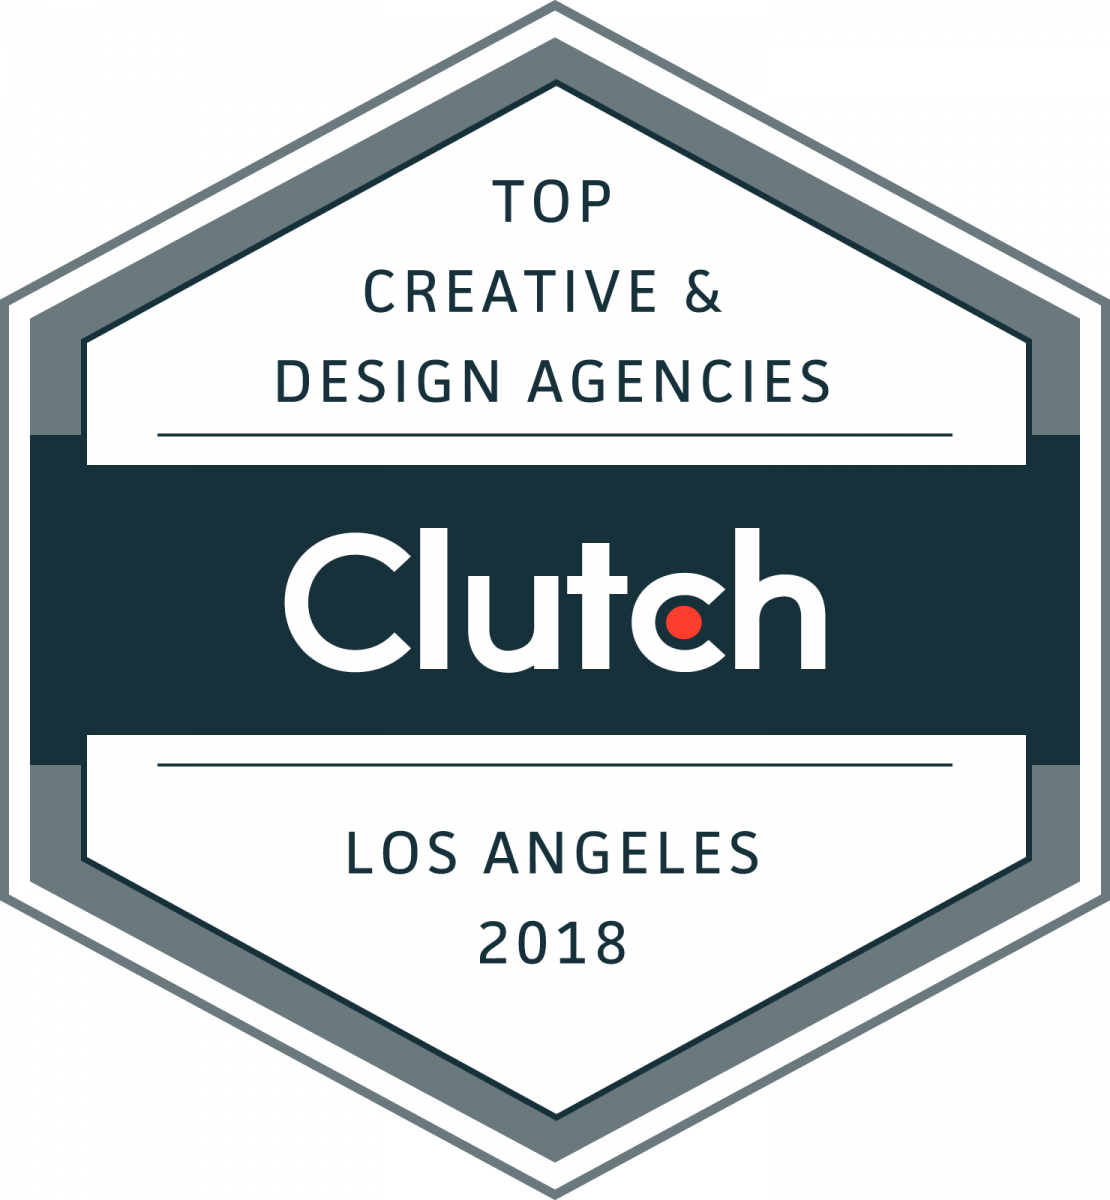 Top Creative & Design Agencies Los Angeles Badge 2018